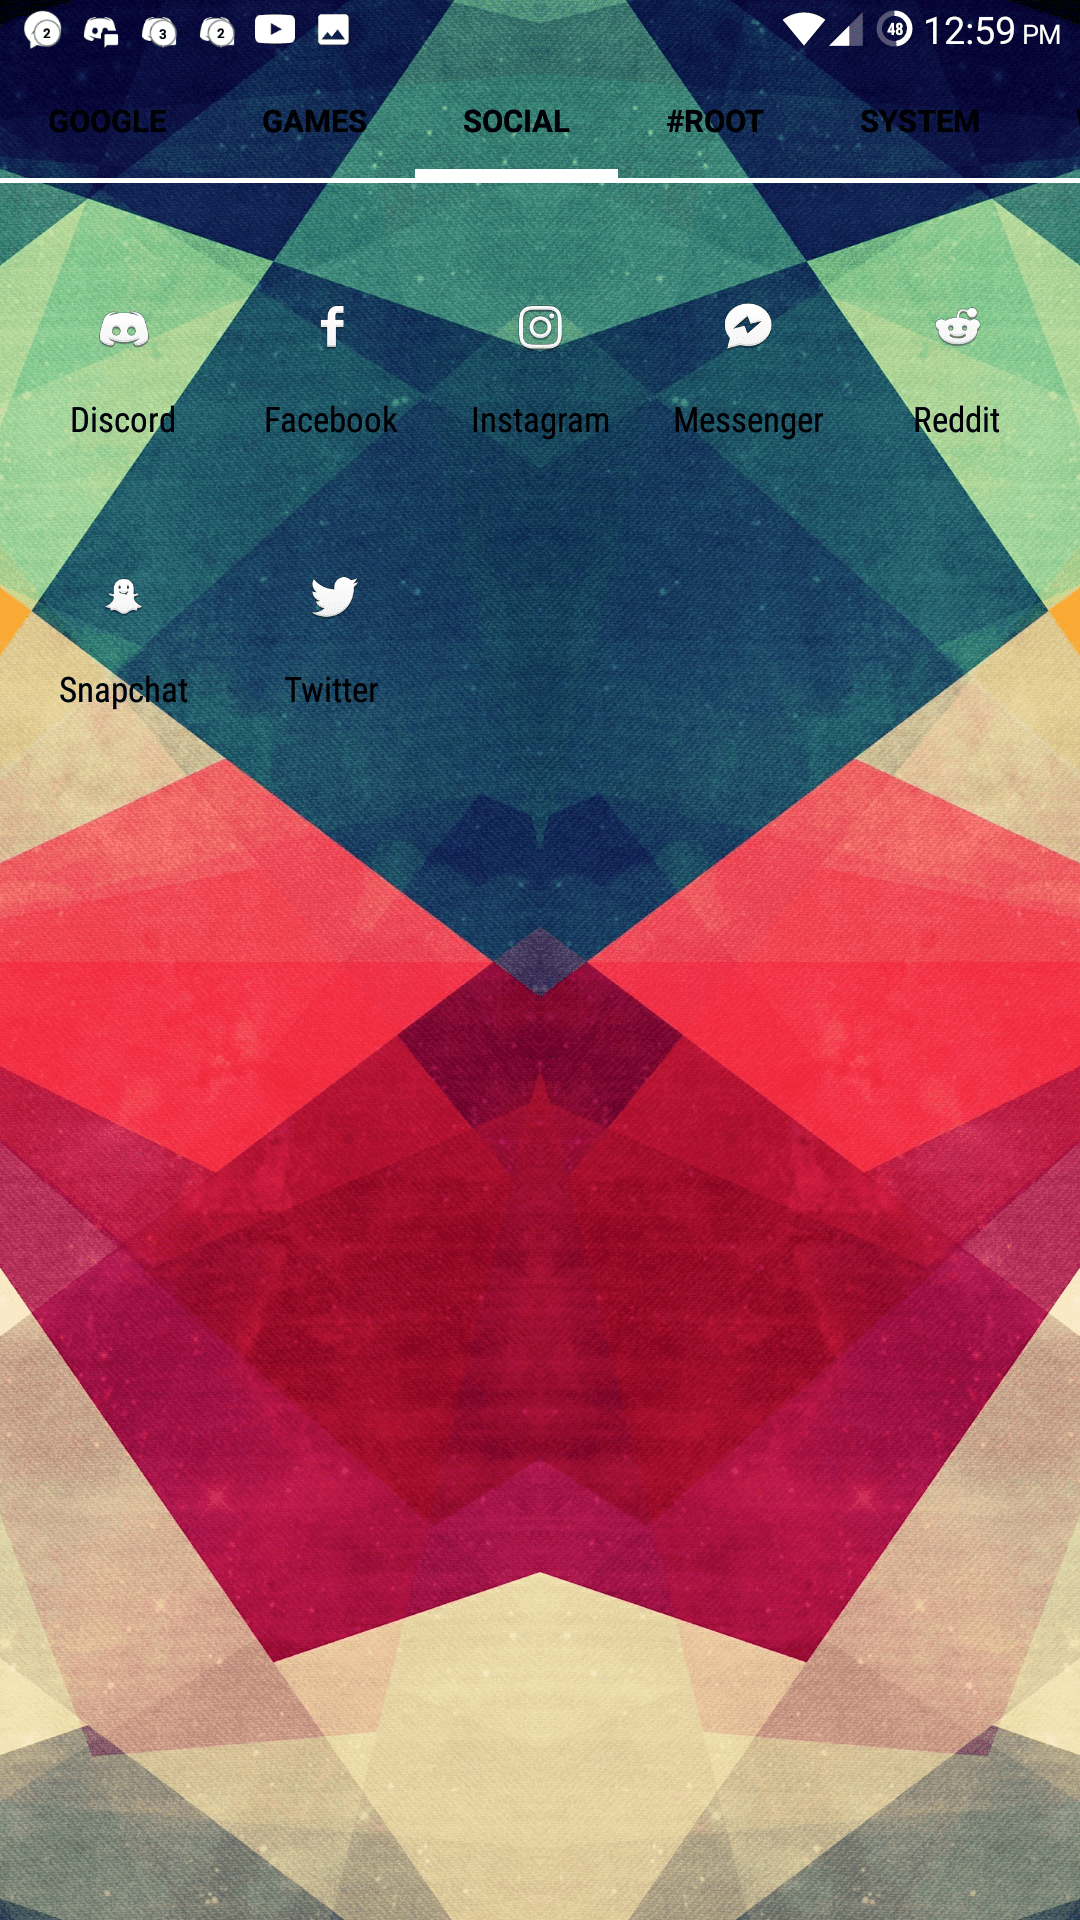 How Can I Change The Font Color Of App Drawer Like The